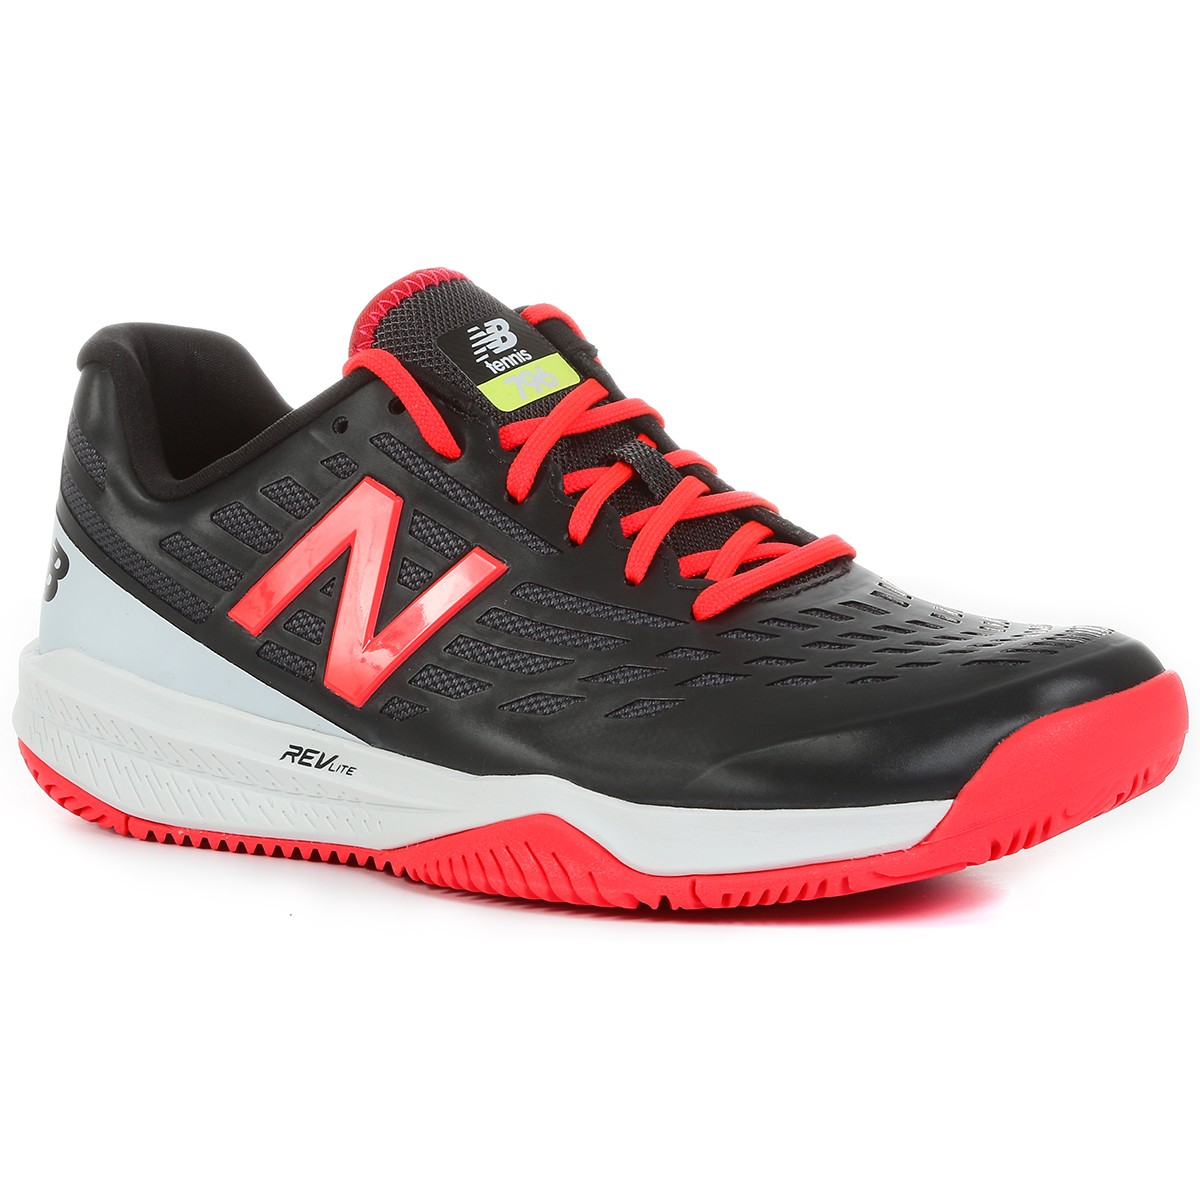 WOMEN'S NEW BALANCE MCH796 SHOES